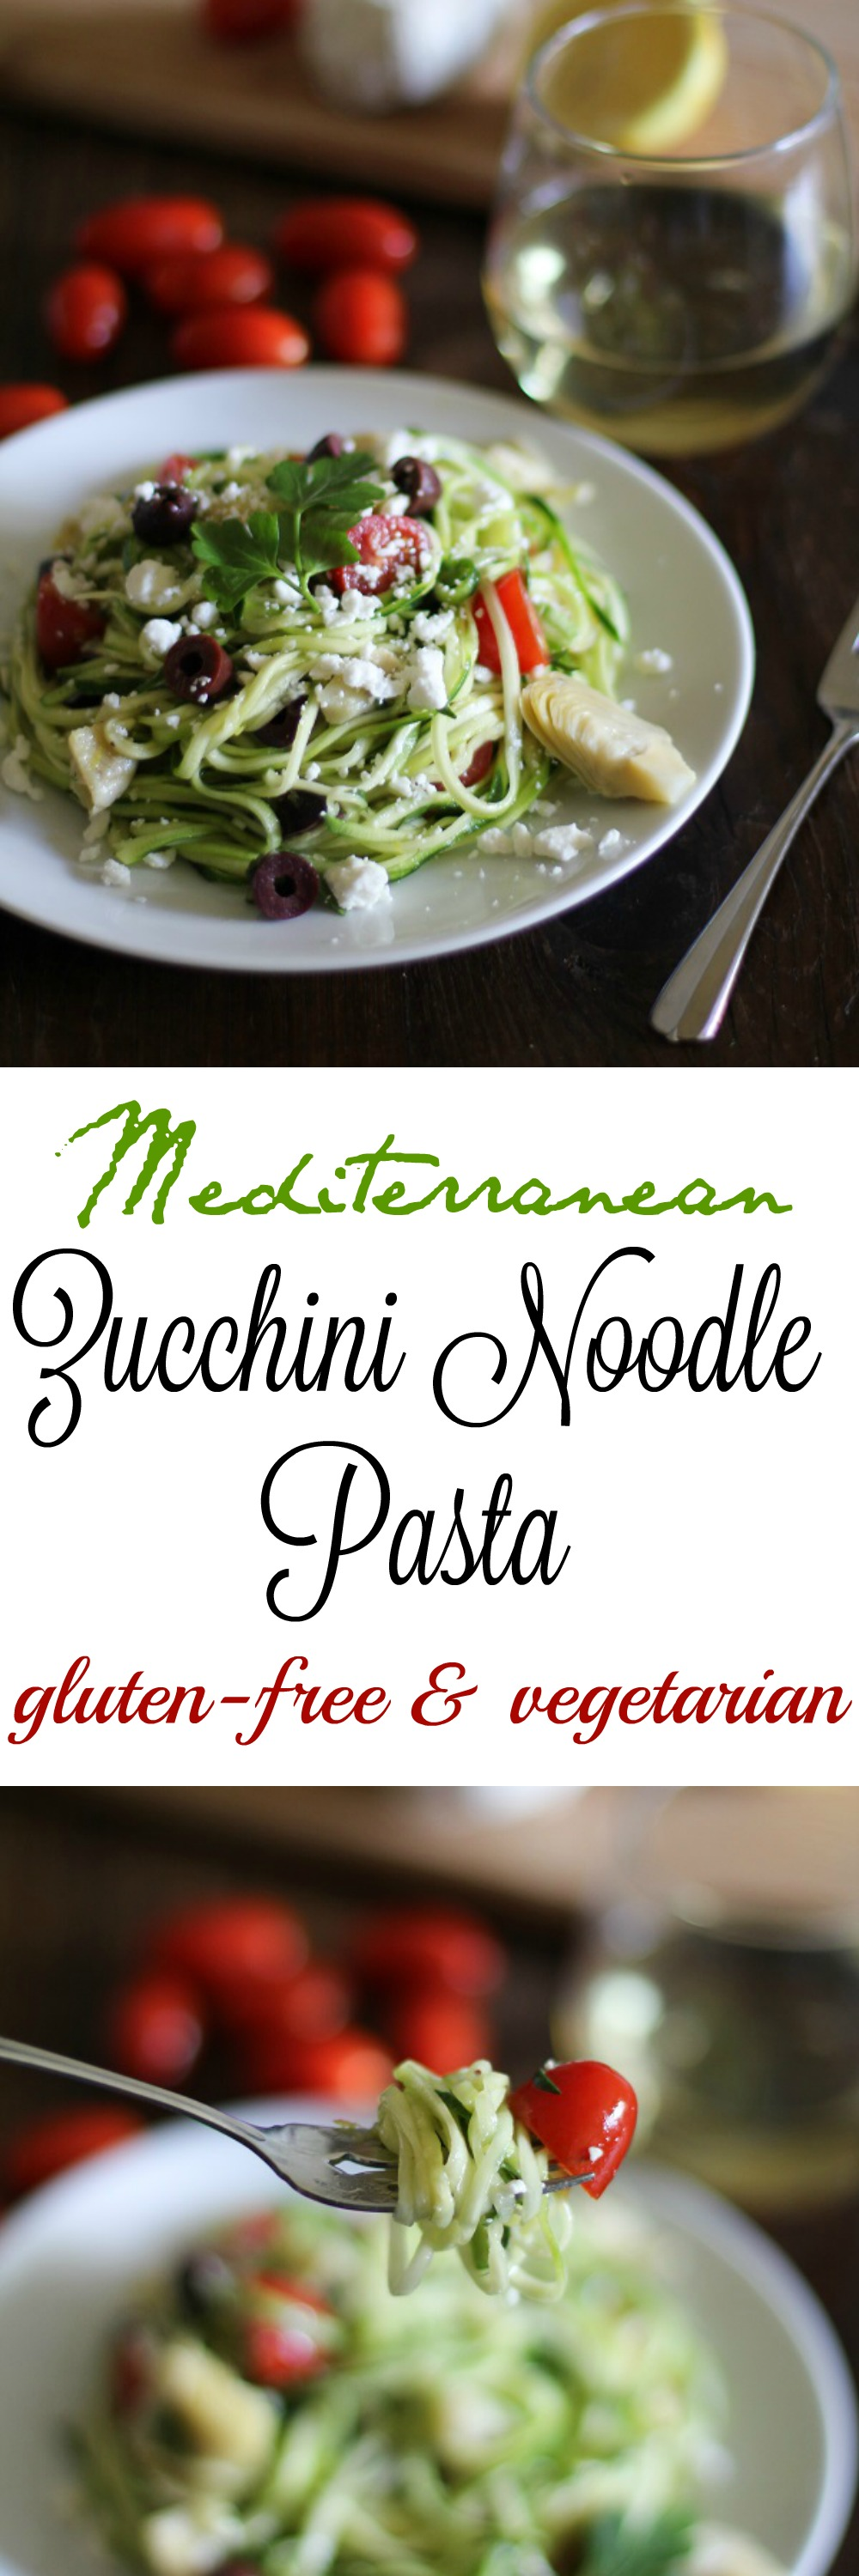 Mediterranean Zucchini Noodle Pasta with kalamata olives, tomatoes, artichoke hearts, and feta | TheRoastedRoot.net #healthy #dinner #recipe #glutenfree